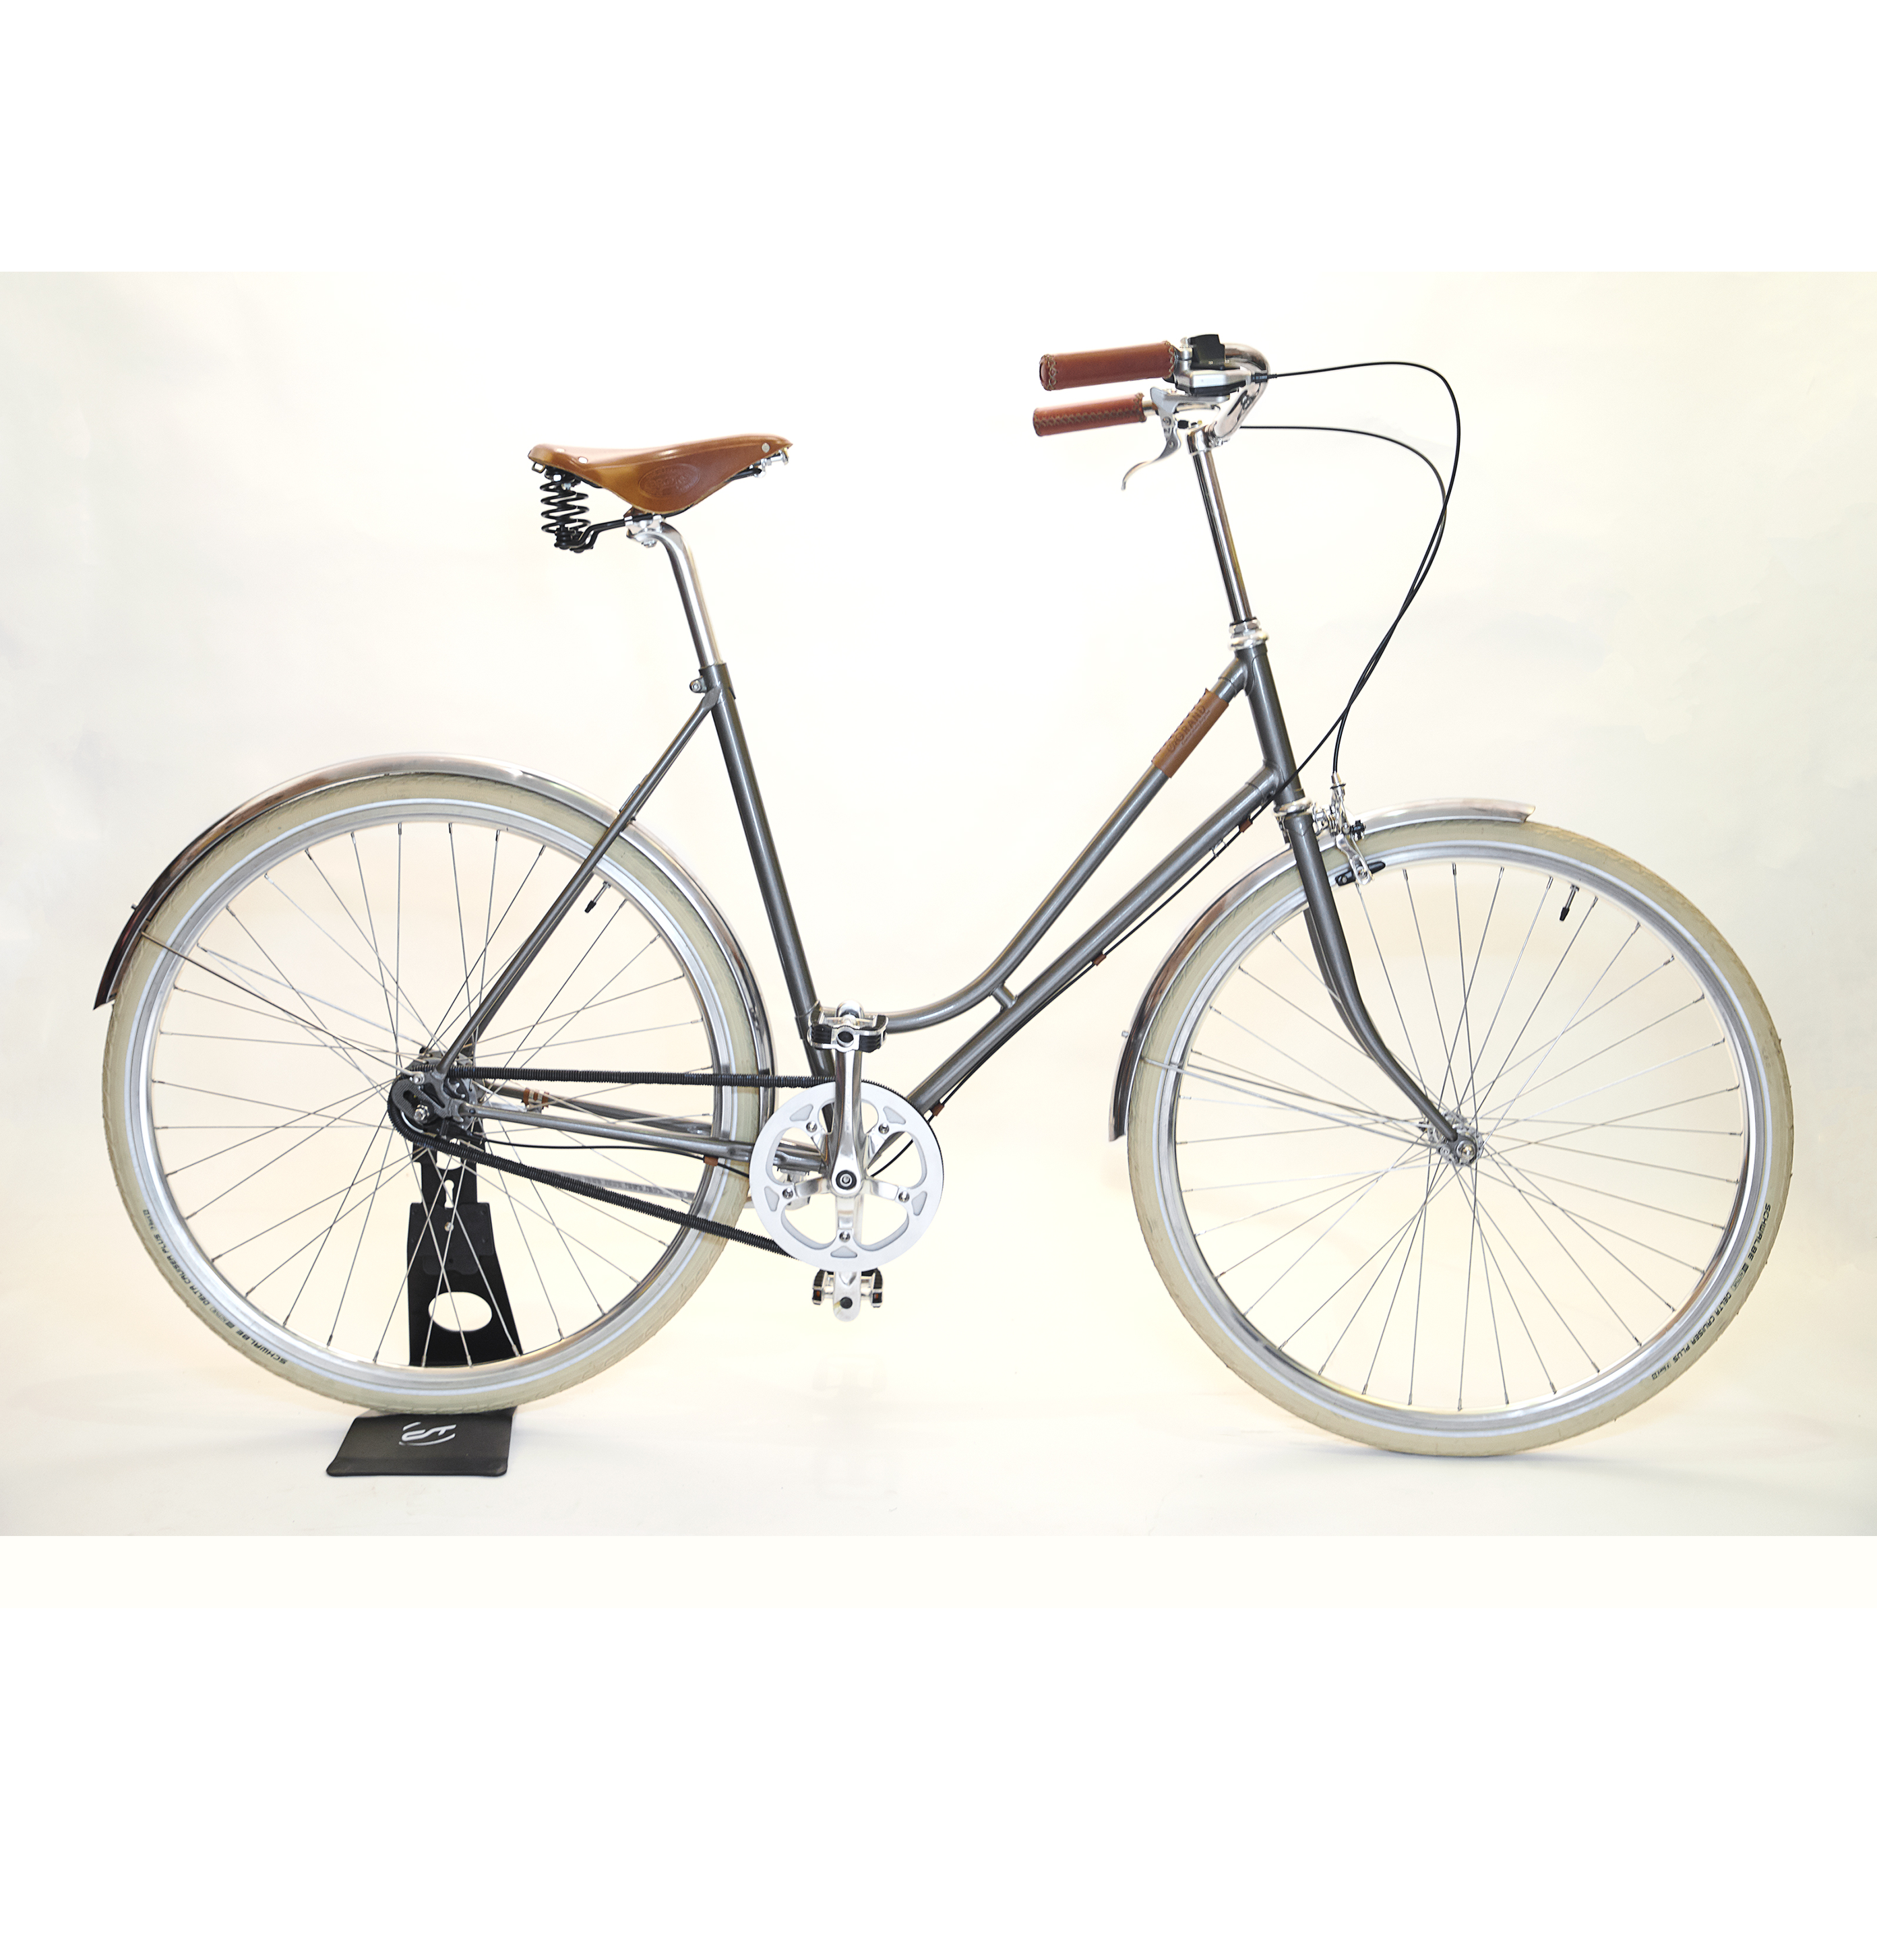 Nologo Grand bike Sølv dame